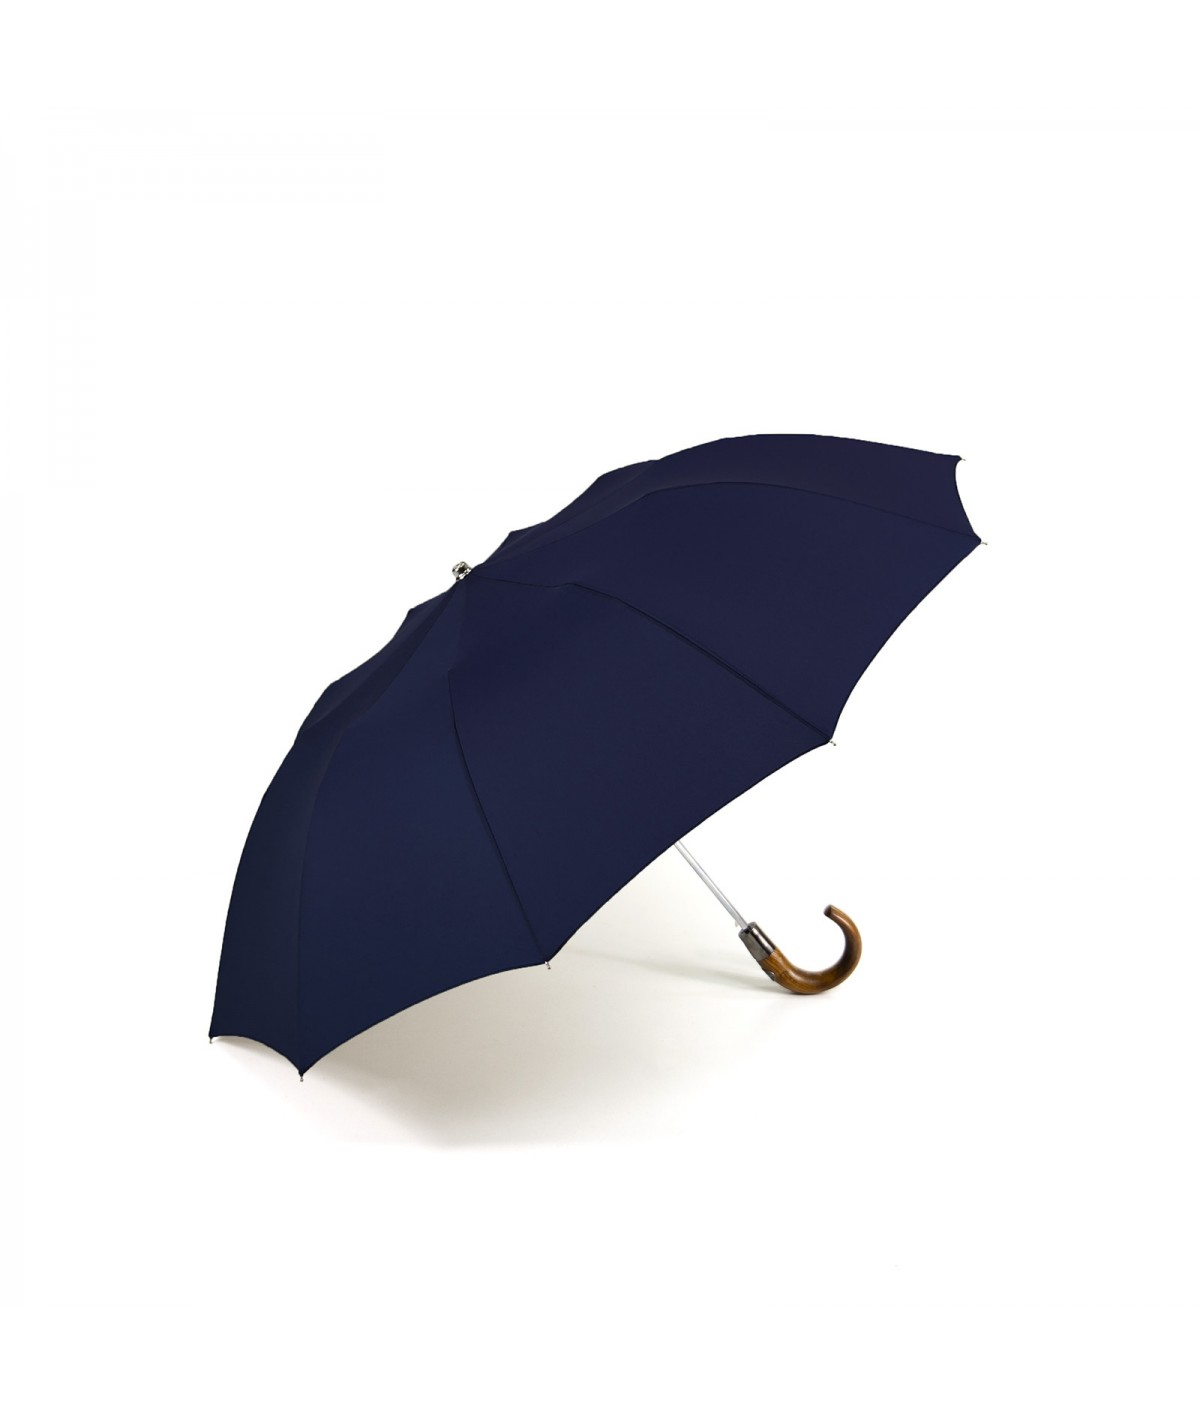 "→ ""The Practice & Chic"" Umbrella - Automatic folding (10 ribs) - Navy - by the French Manufacturer Maison Pierre Vaux"